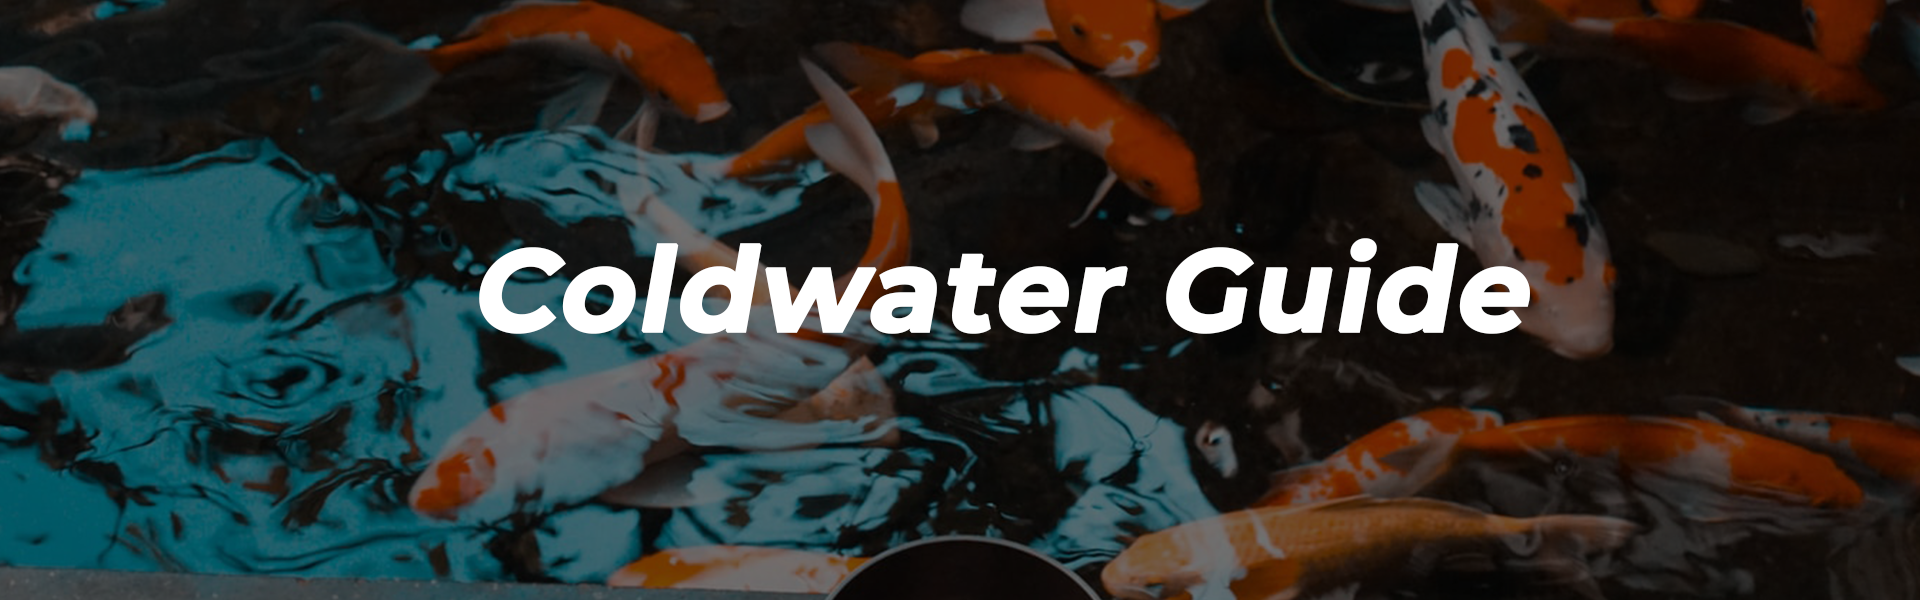 Coldwater Guide Banner